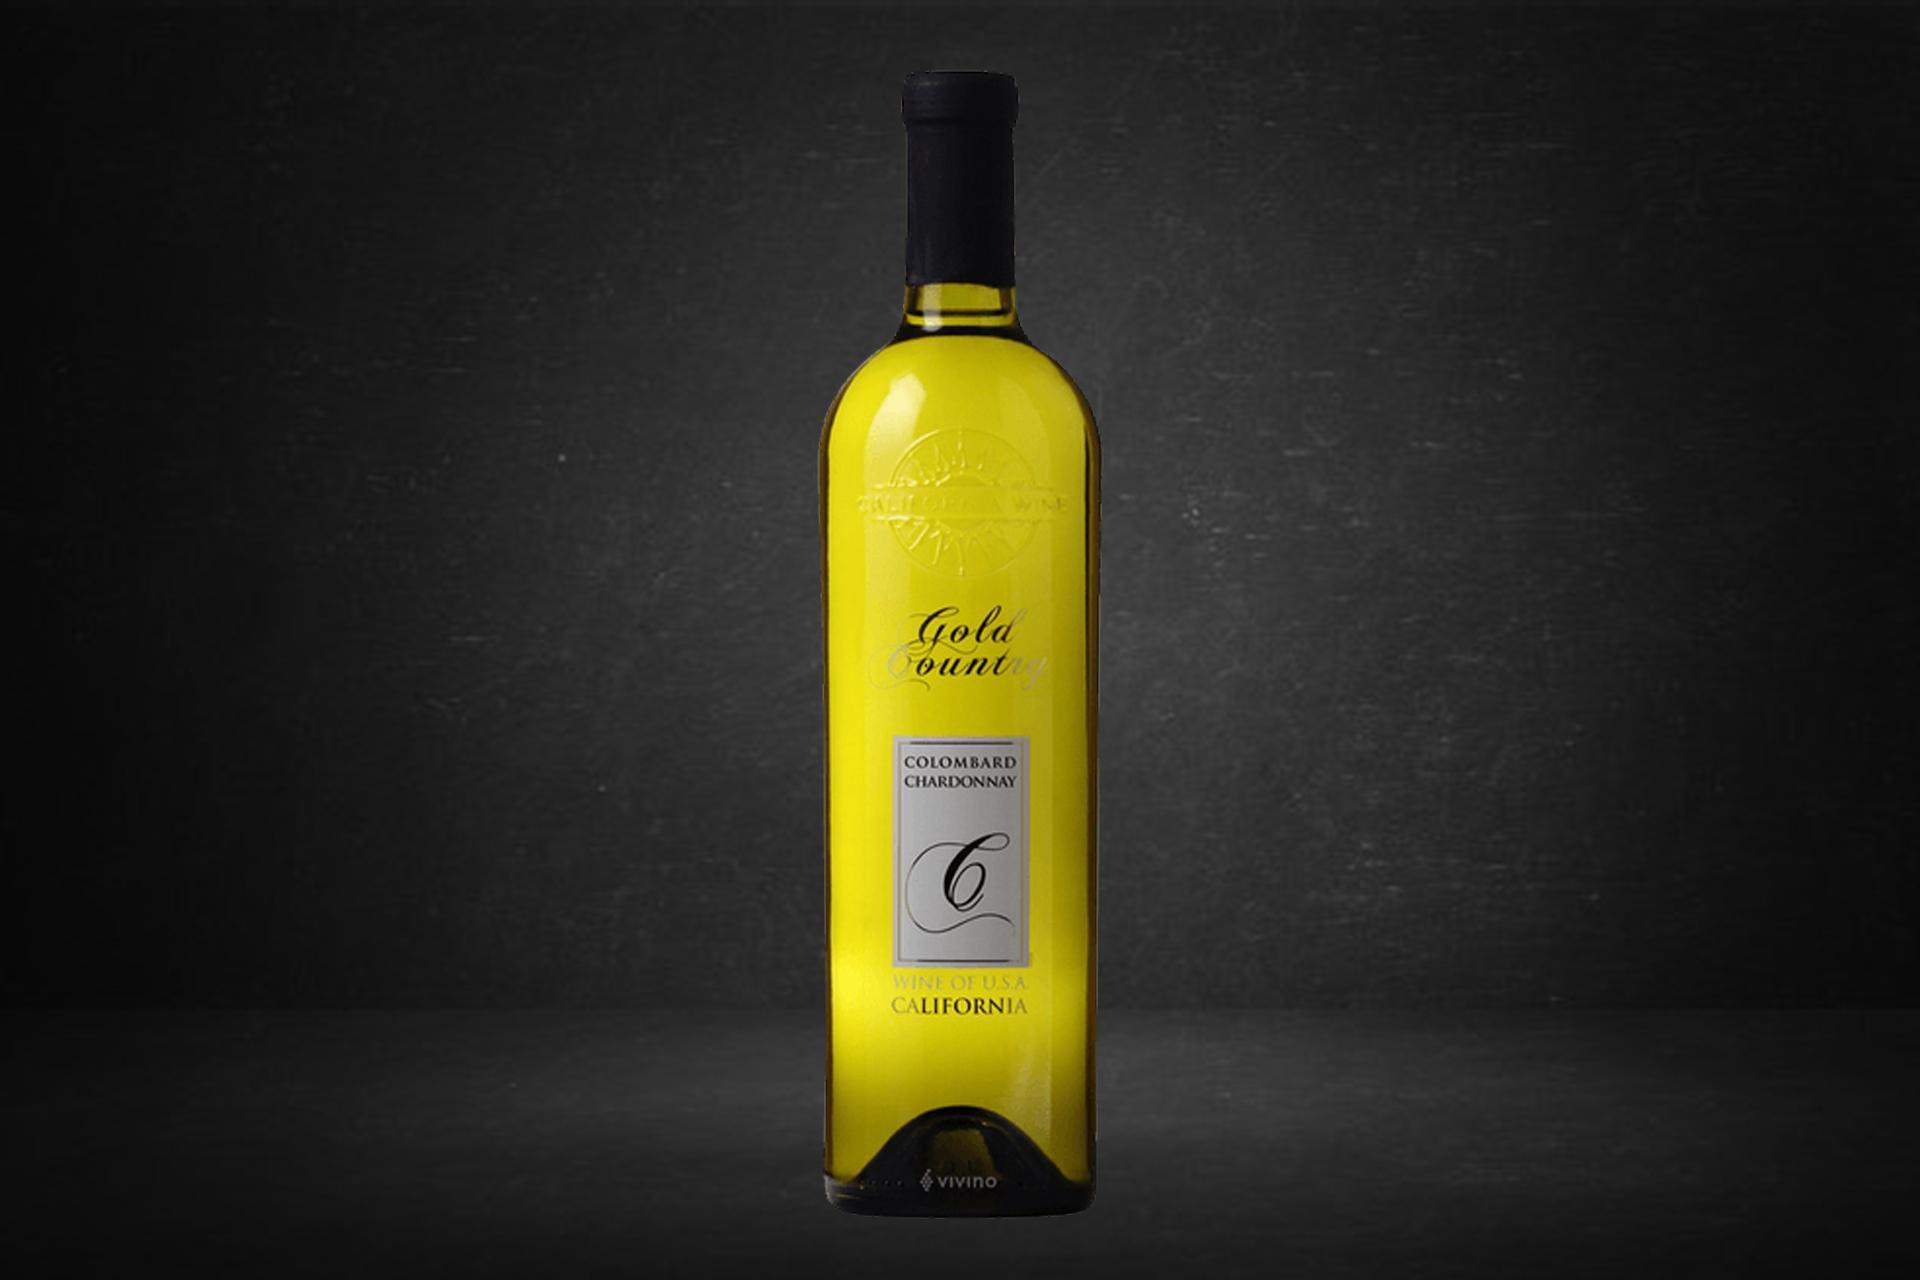 Gold Country, Colombard Chardonnay